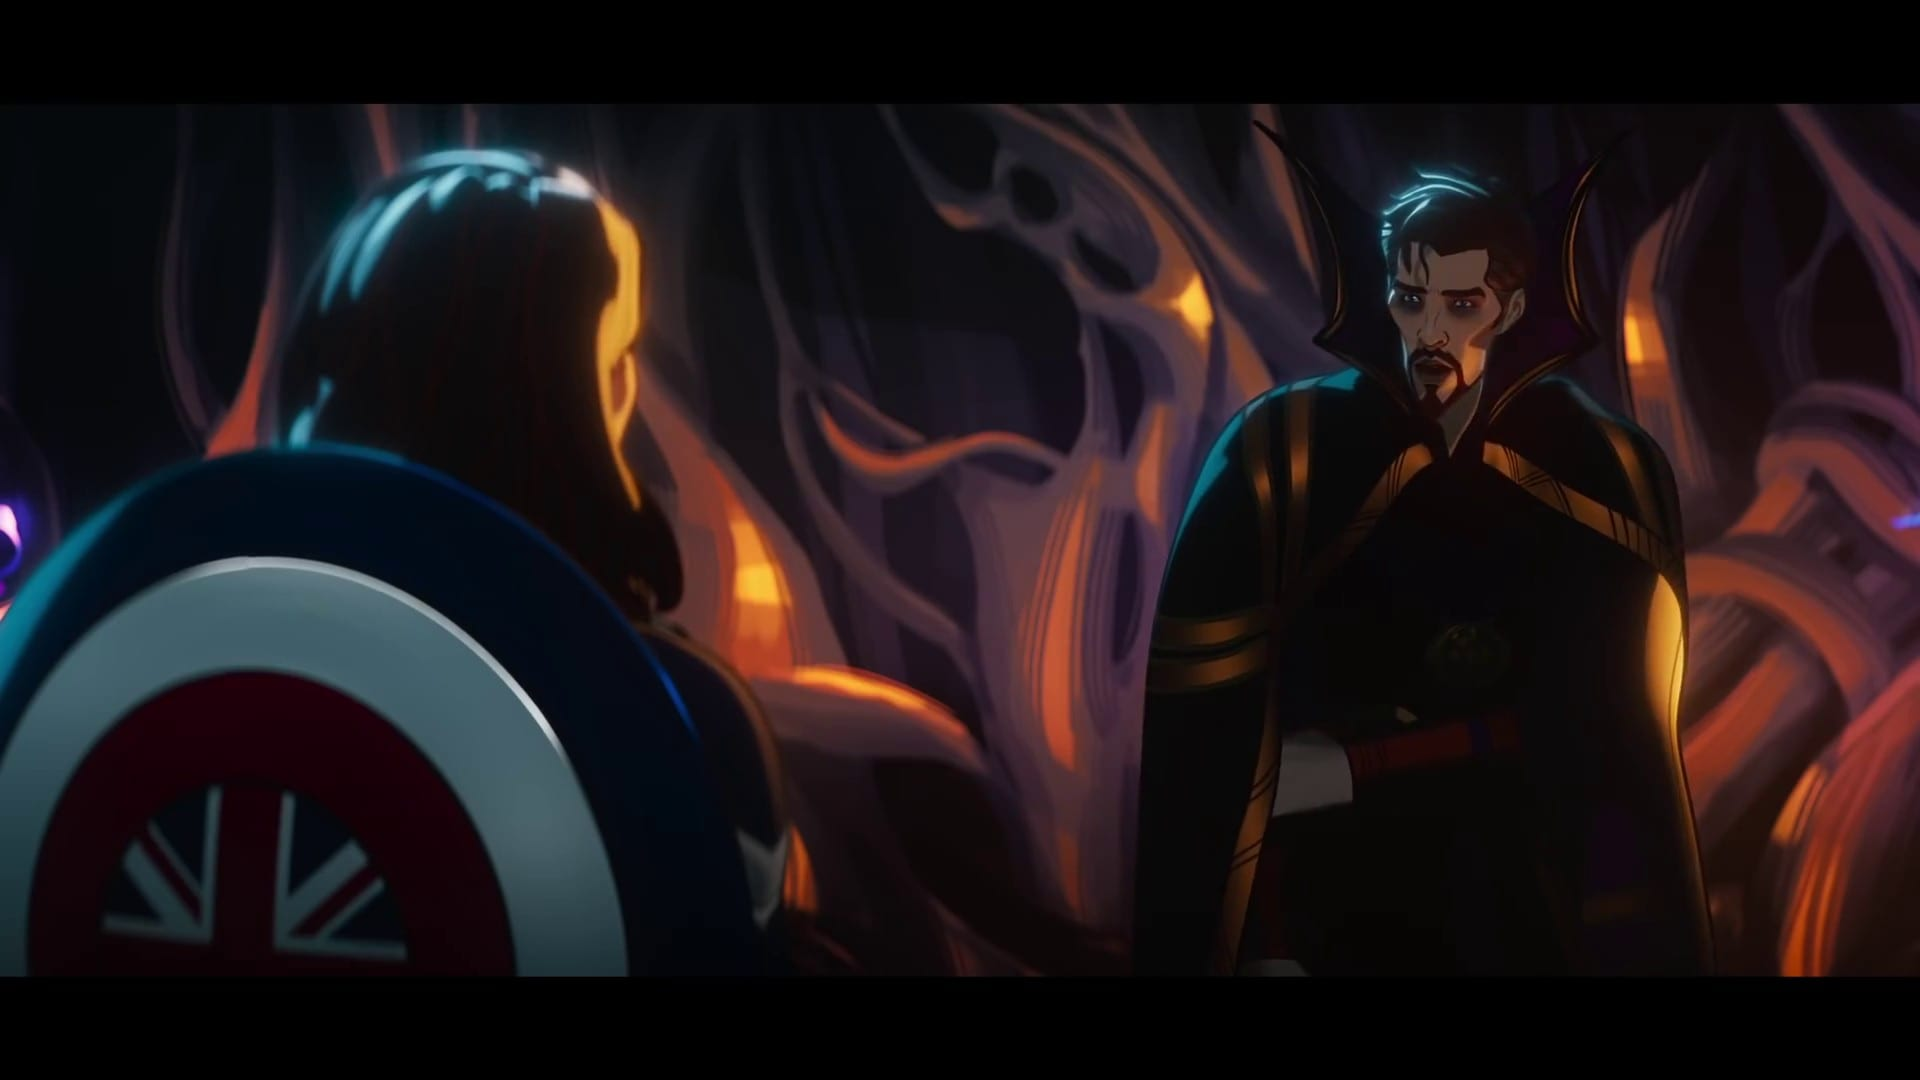 Universe Breakdown of What If...? Trailer